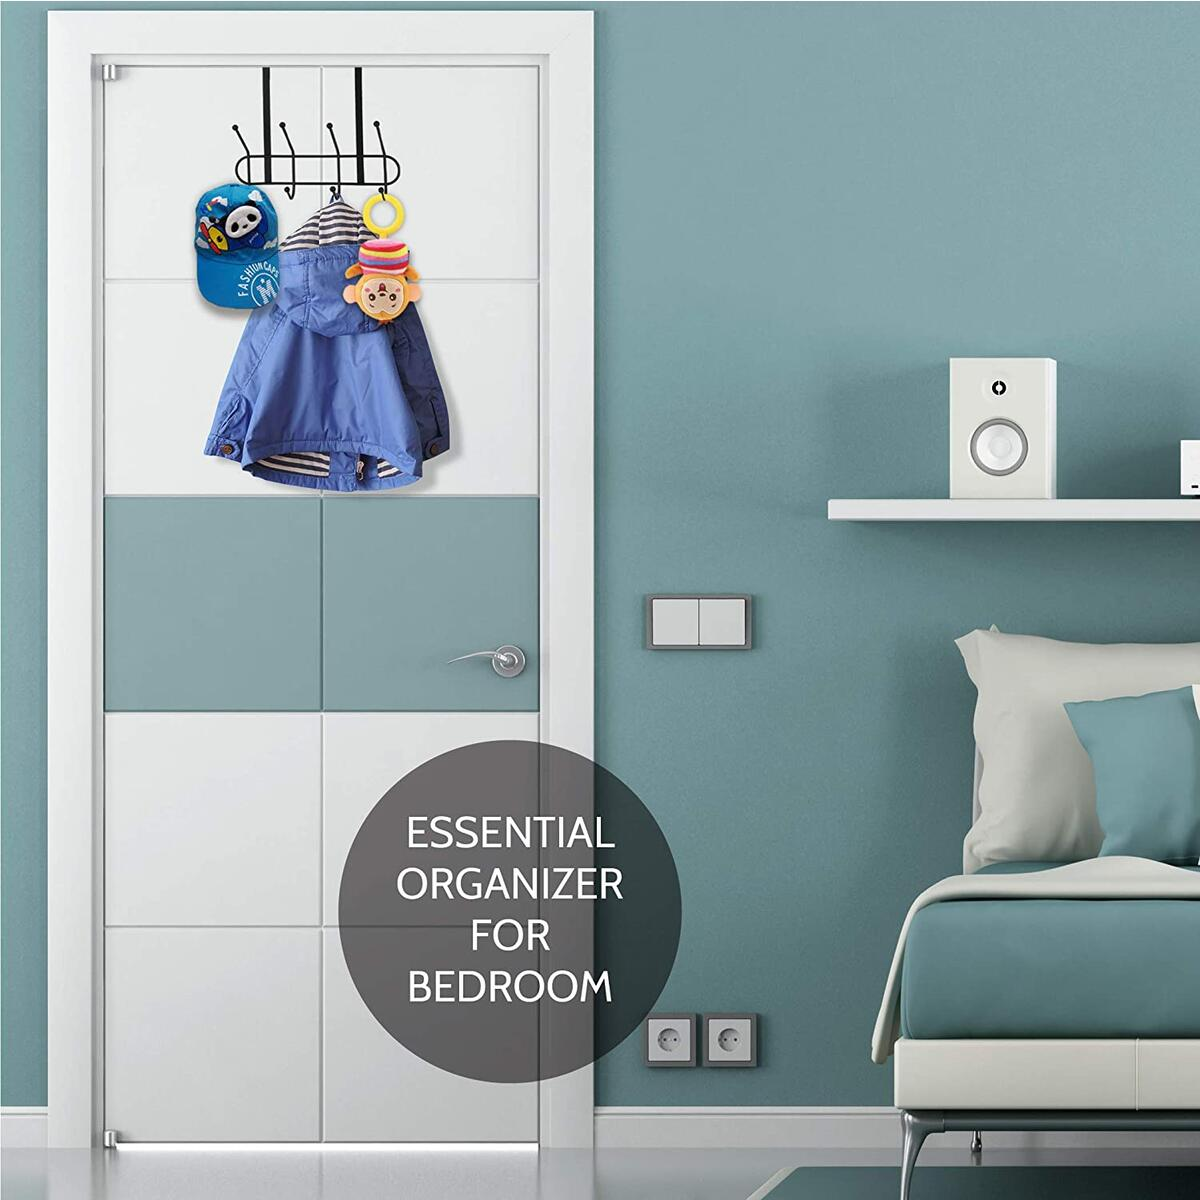 Over The Door Hook - Bathroom Over Door Hook Organizer - Storage Rack for Towels, Coats, Hats, Clothes - Heavy Duty 8 Hooks Hanger for Bedroom, Hallway, Dorm - Steel Coated No Installation No Screws